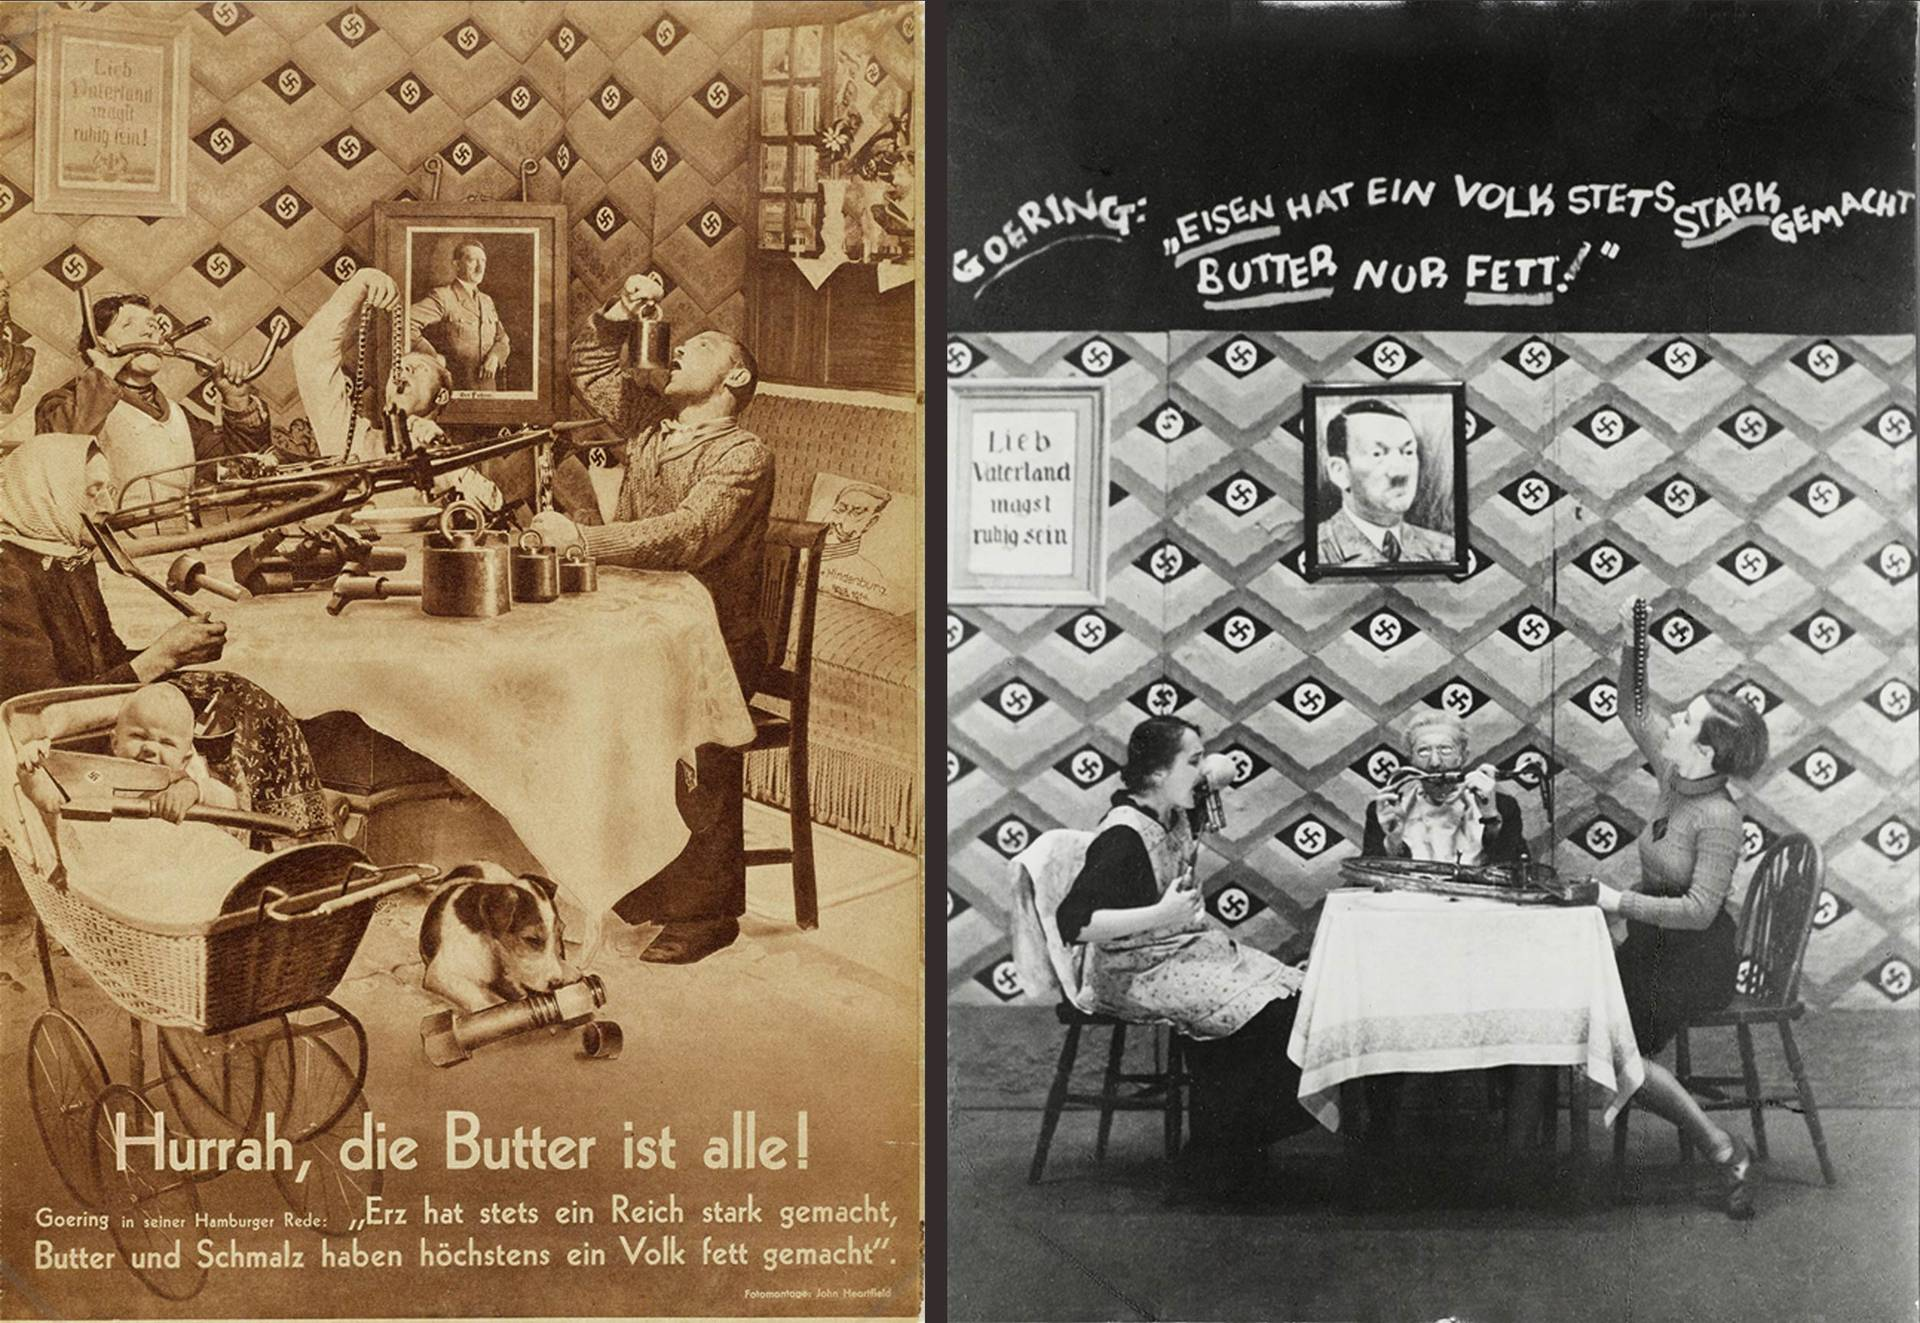 """Hurrah, die Butter ist alle!"", AIZ page, 1935 and stage photo from the cabaret of the Free German League of Culture in England, 1939"